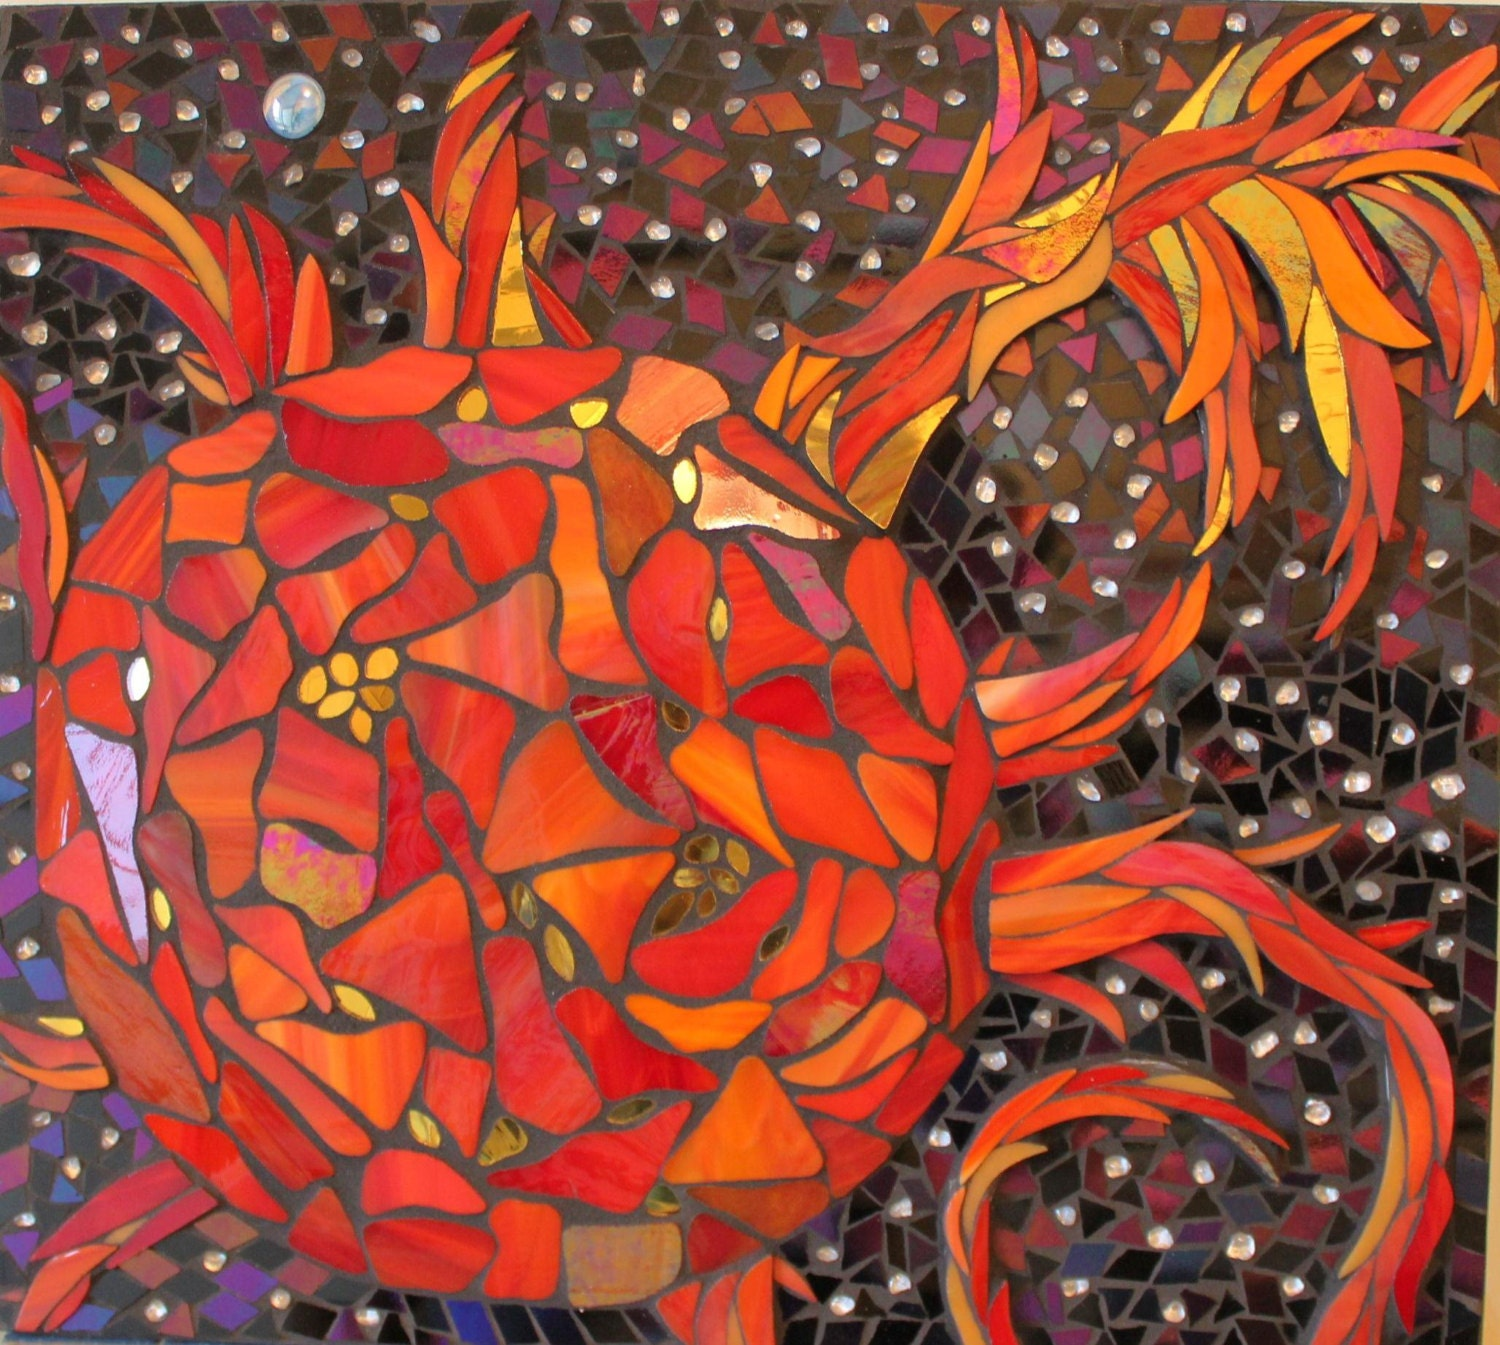 Stained Glass Mosaic Sun, Earth, Cosmos, Space, Solar Flares, Red - GlassArtsStudio